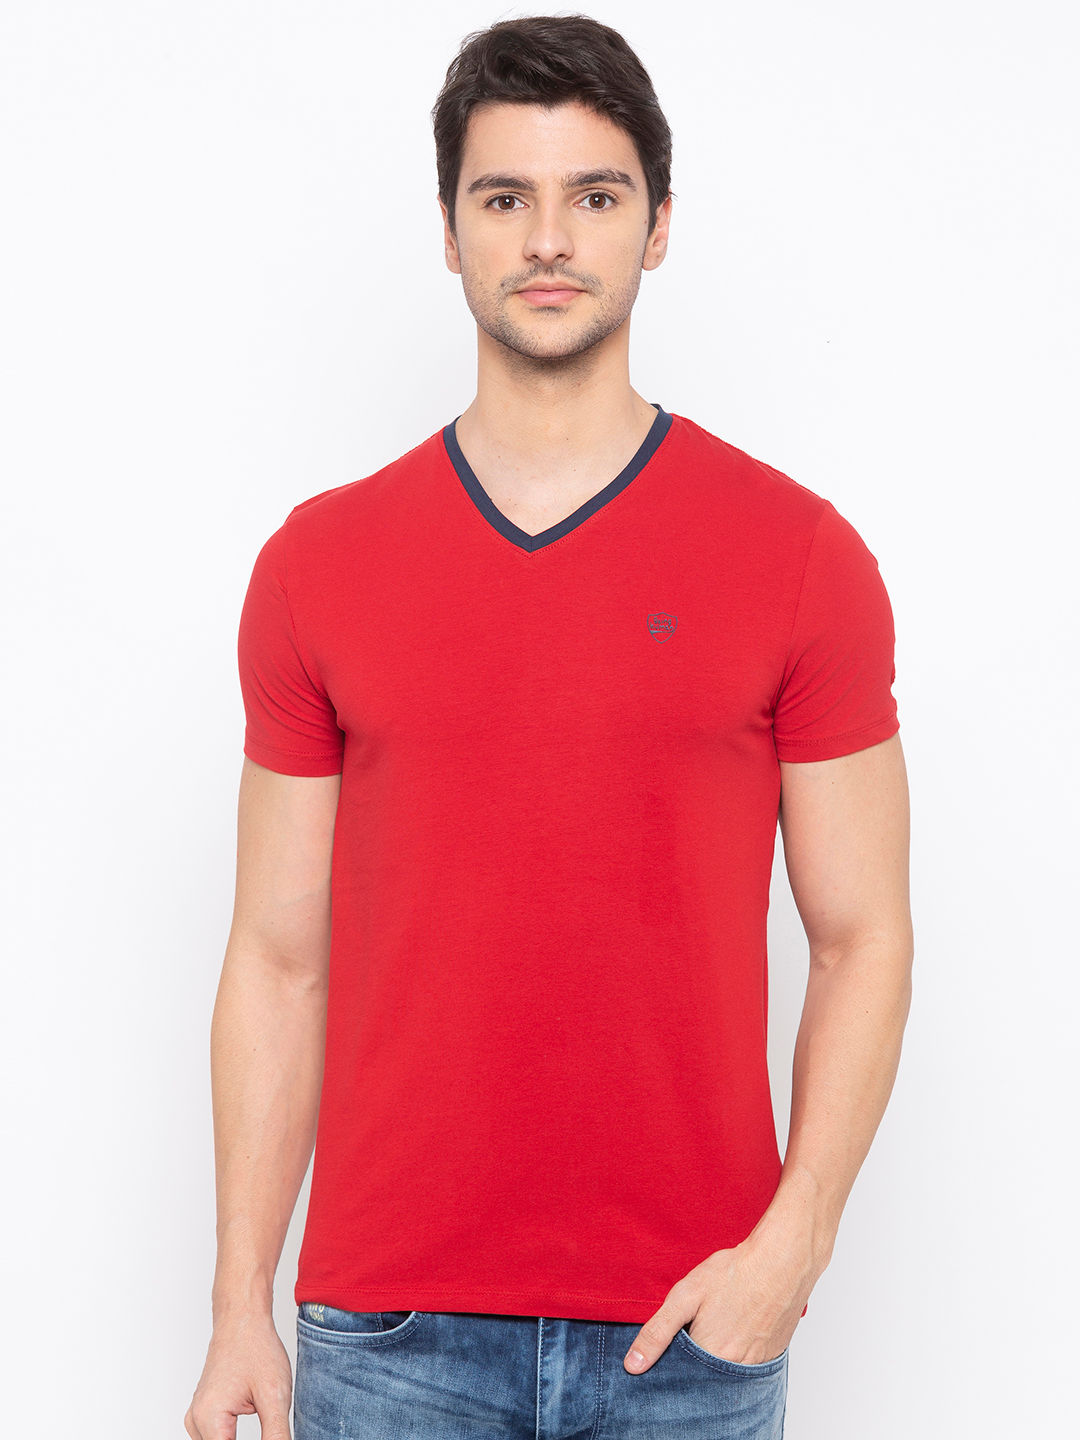 Mens Short Sleeve V Neck with HD Print